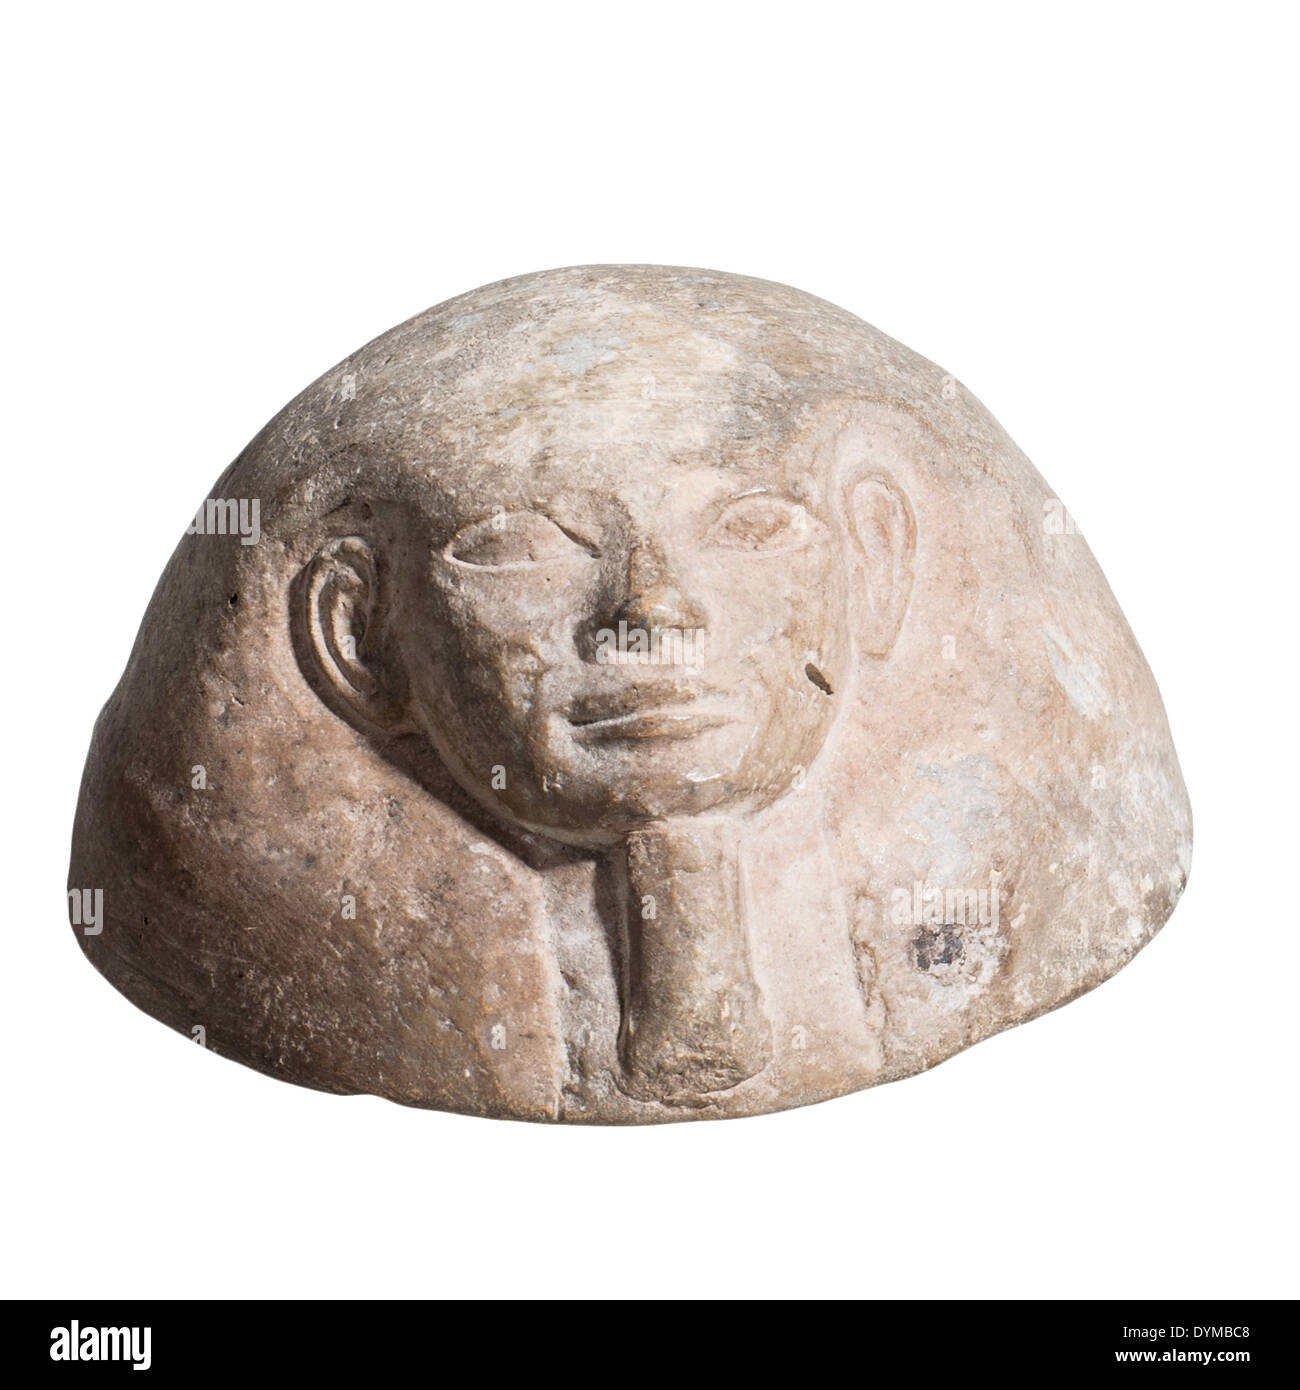 Egyptian terracotta Canopic jar lid. 2nd millennium BC. On White Background - Stock Image